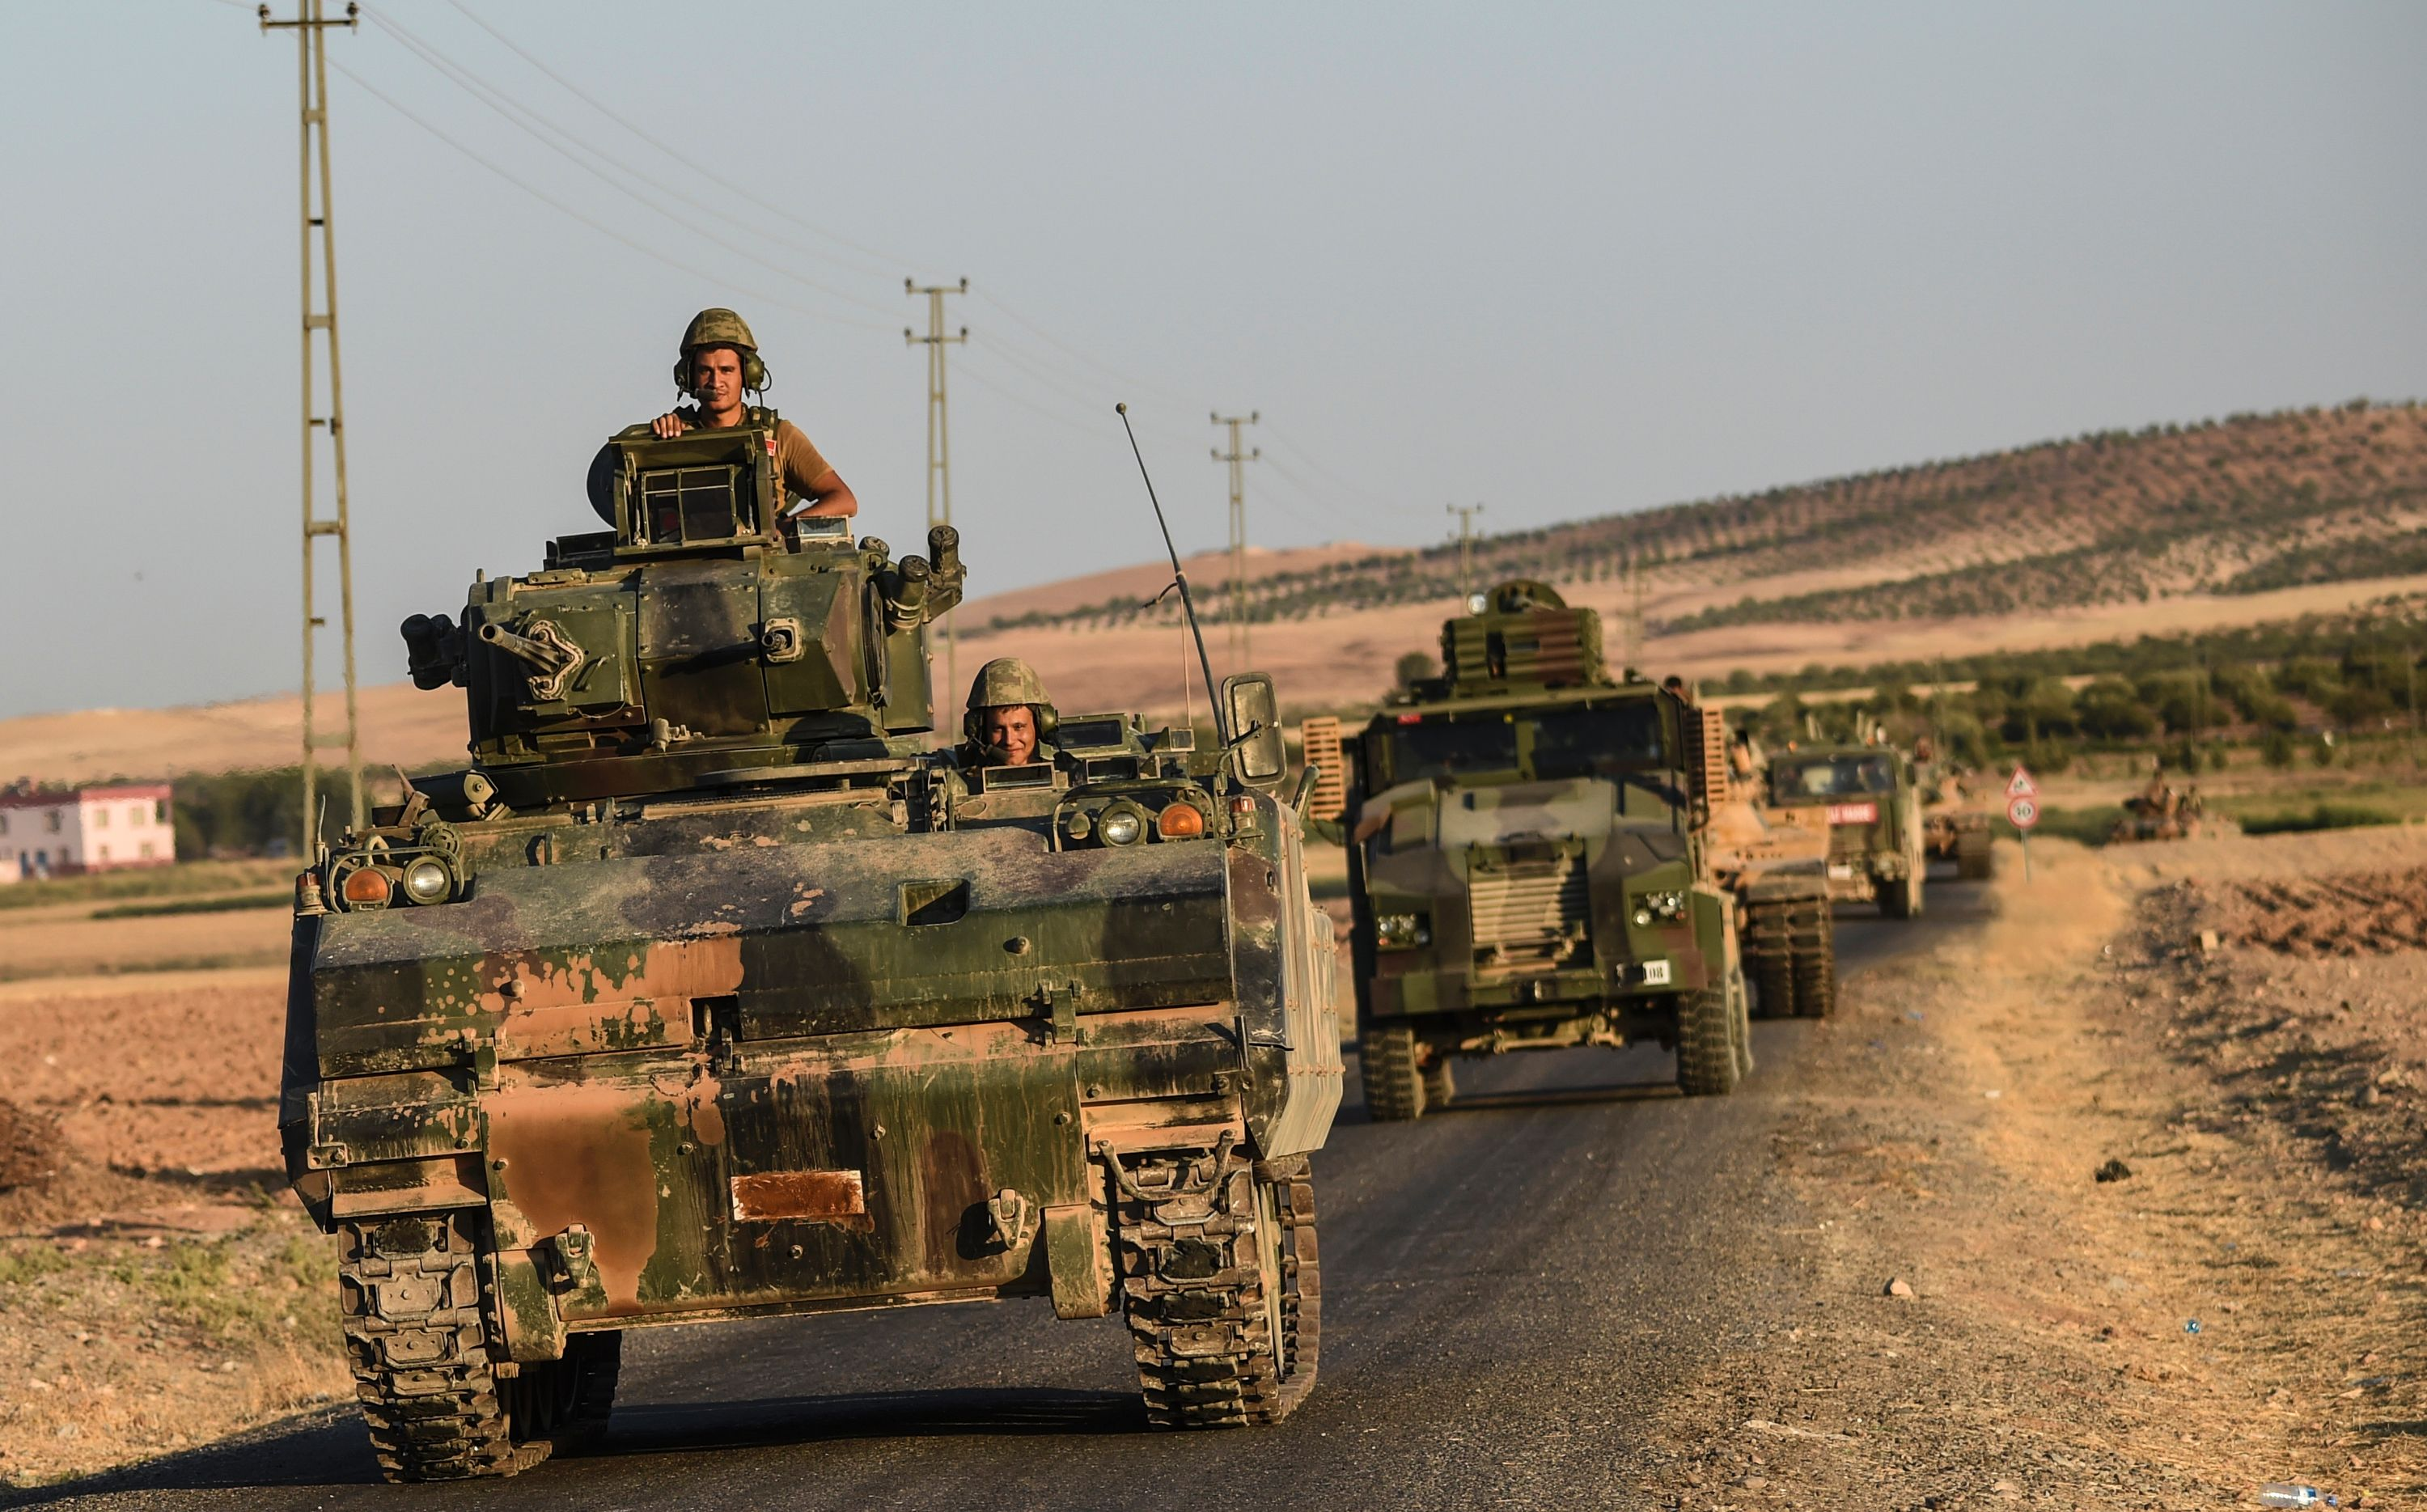 Hundreds of Western Anti-ISIS Fighters Send Themselves to the Front